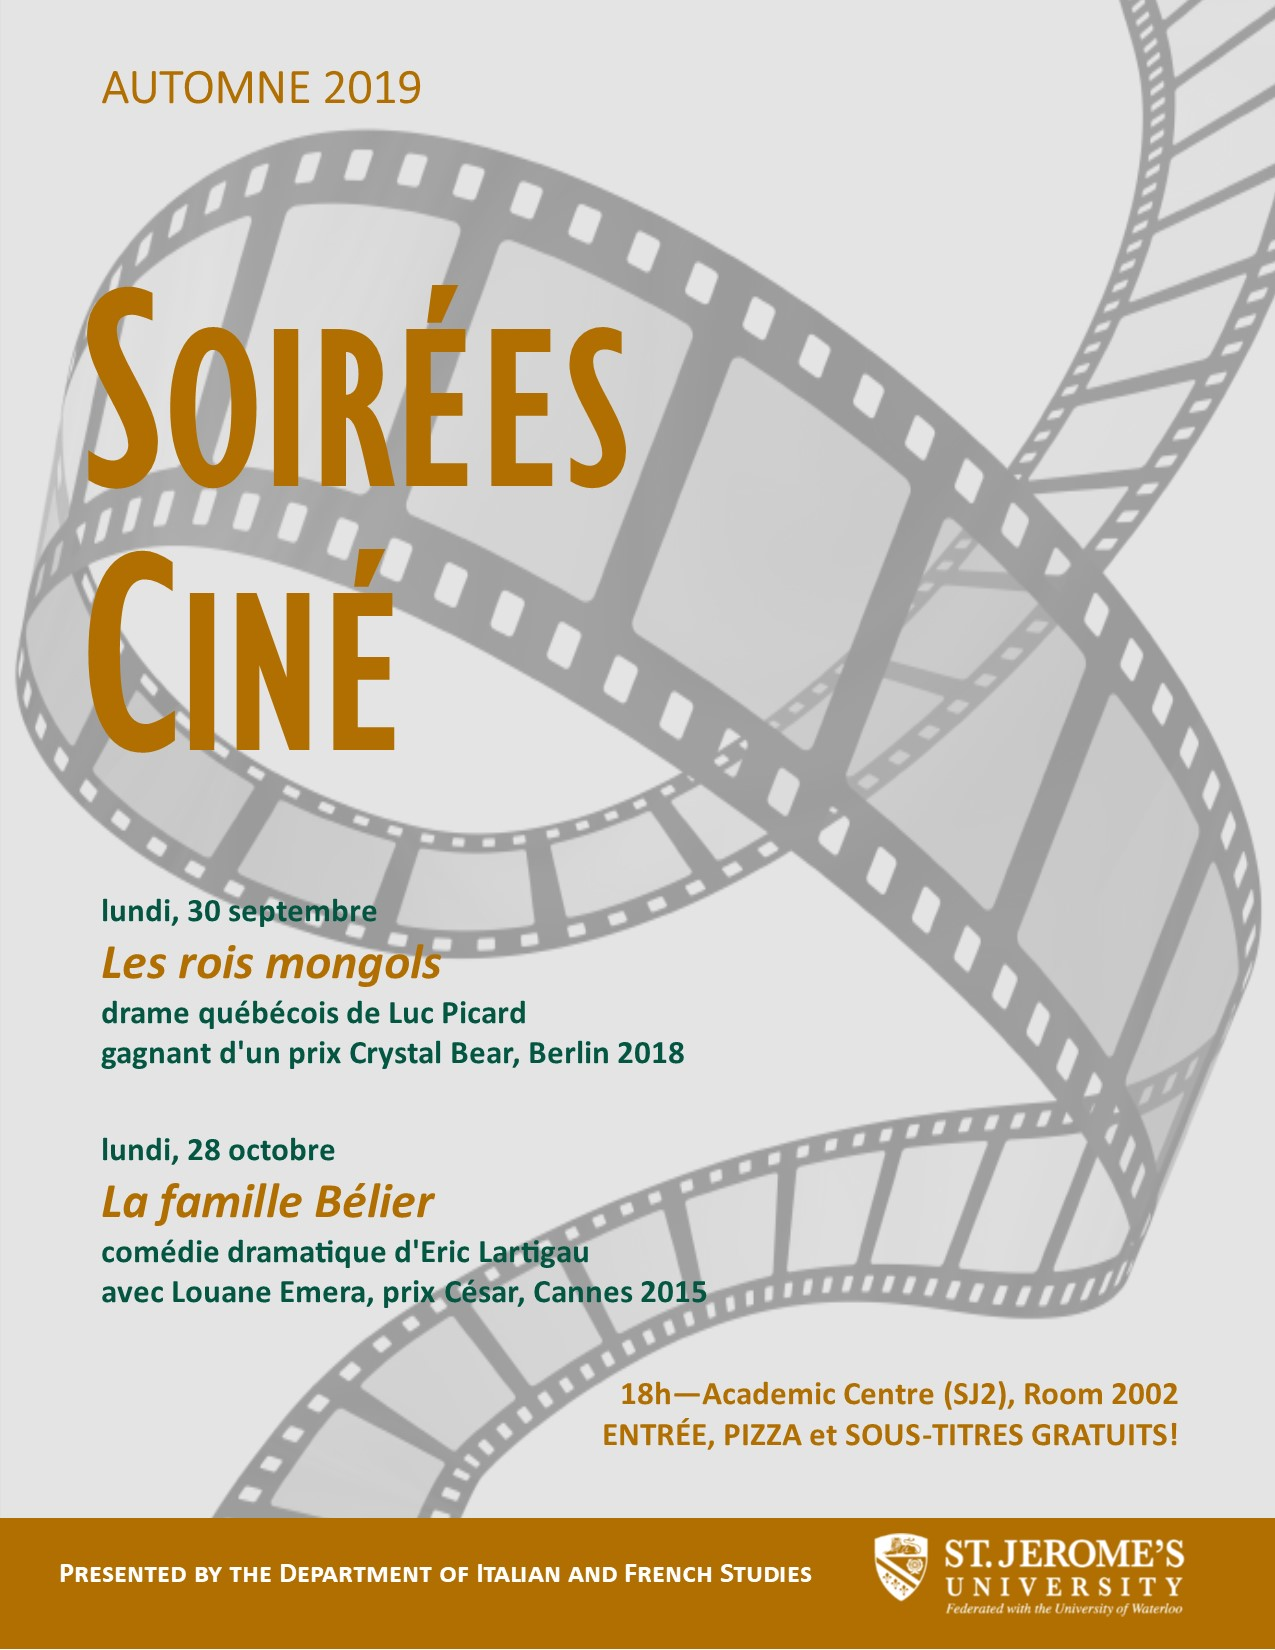 Soiree Cine Fall 2019